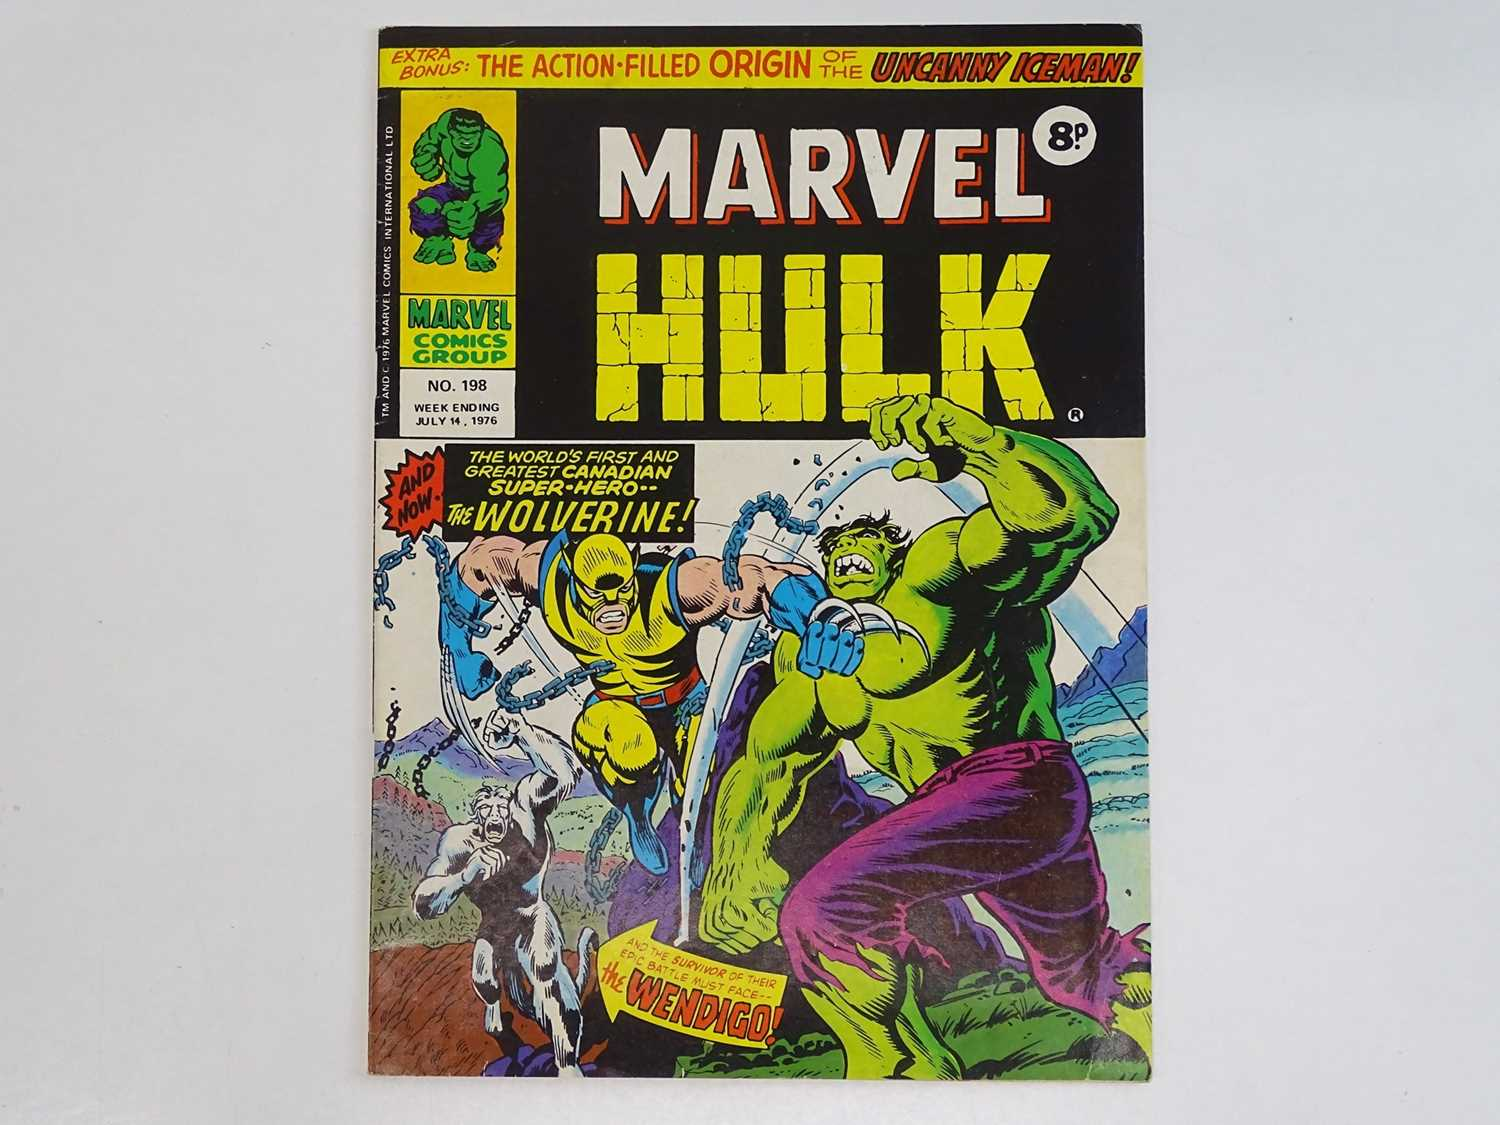 MIGHTY WORLD OF MARVEL #1 to 397 - (397 in Lot) - (1972/83 - BRITISH MARVEL) - Complete 397 issue - Image 3 of 3